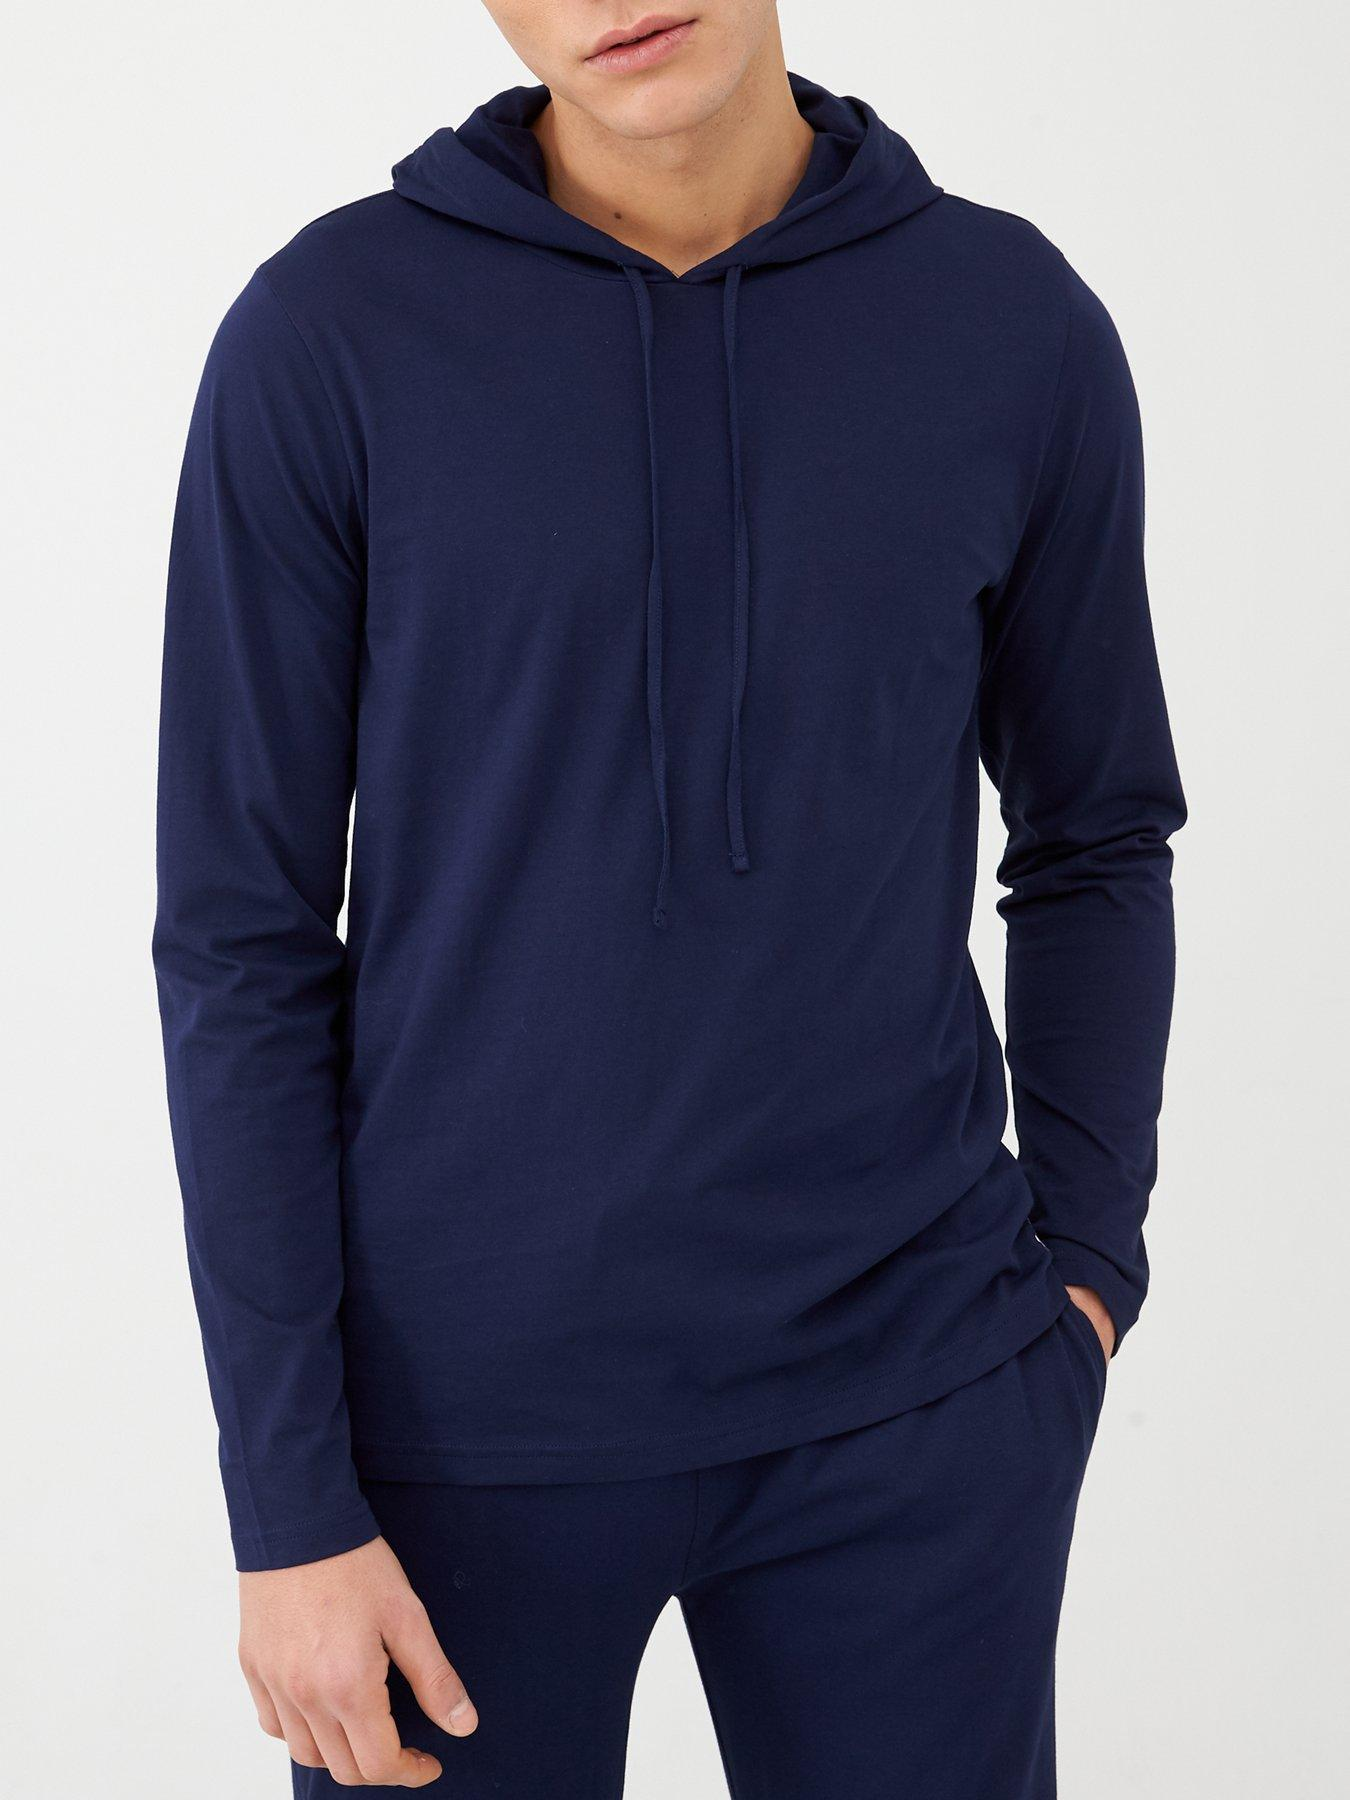 Ralph Polo uk LaurenBrand Very co Store 35q4AcjLR